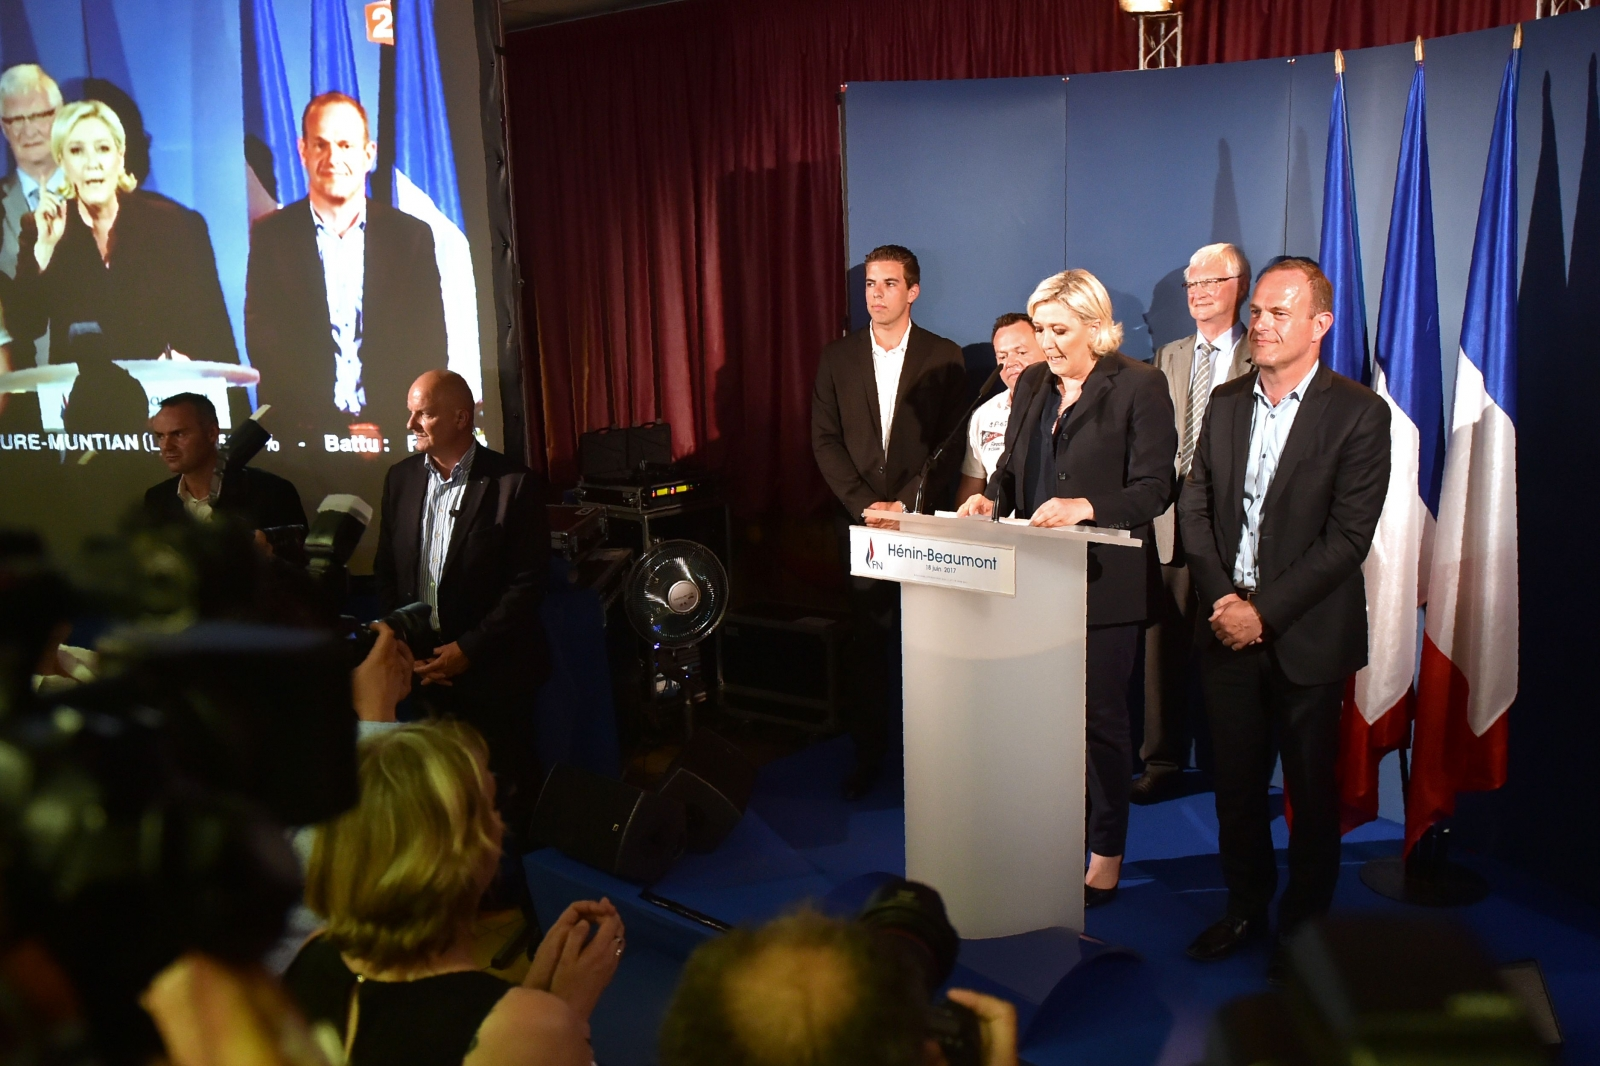 Marine Le Pen wins parliamentary seat